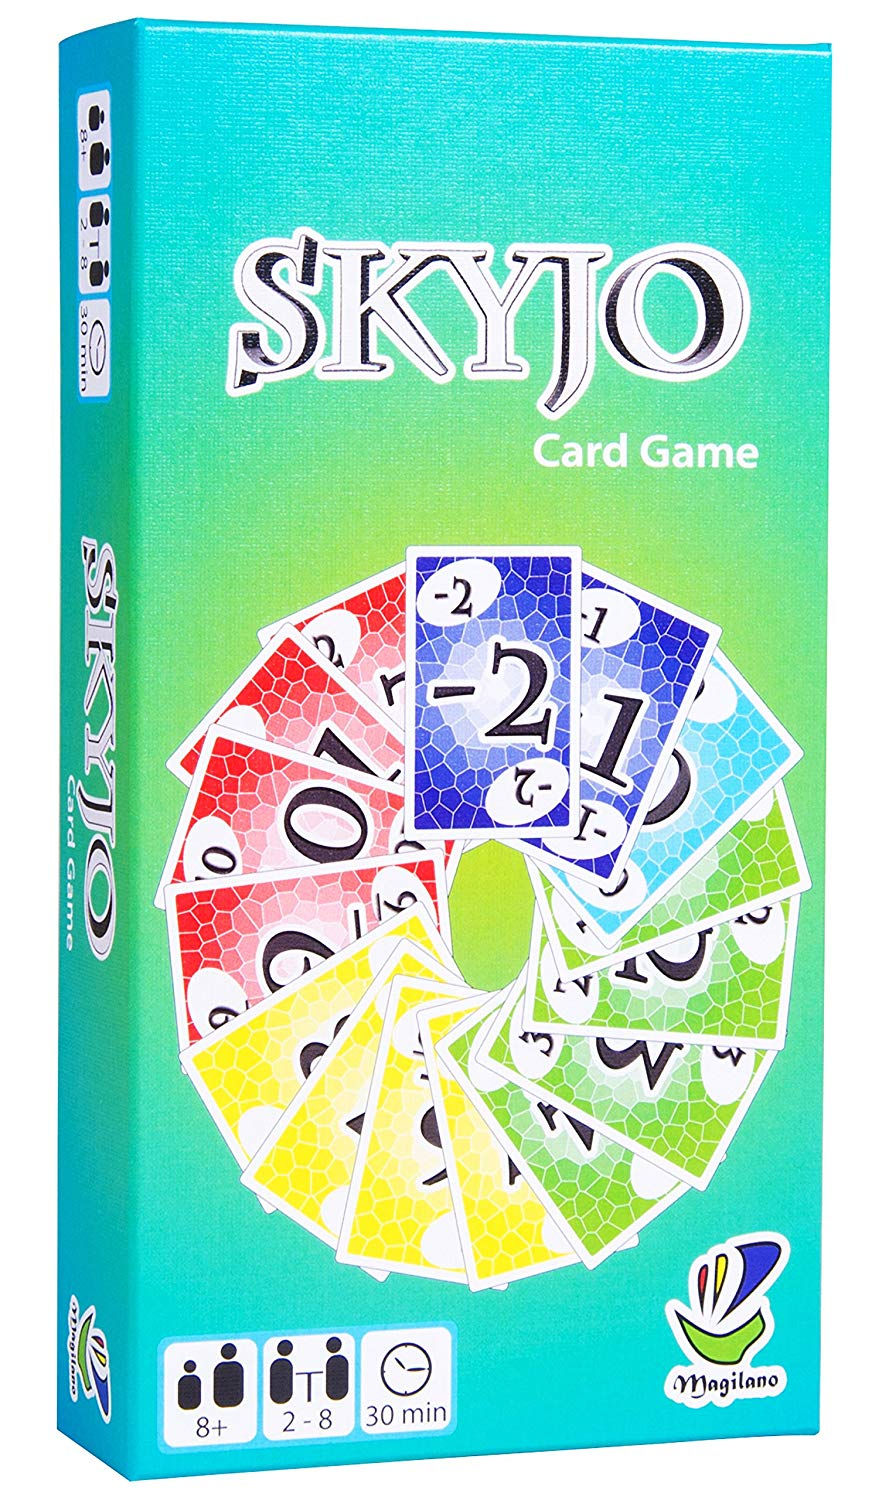 Cool kids' gifts under $15: Skyjo family card game